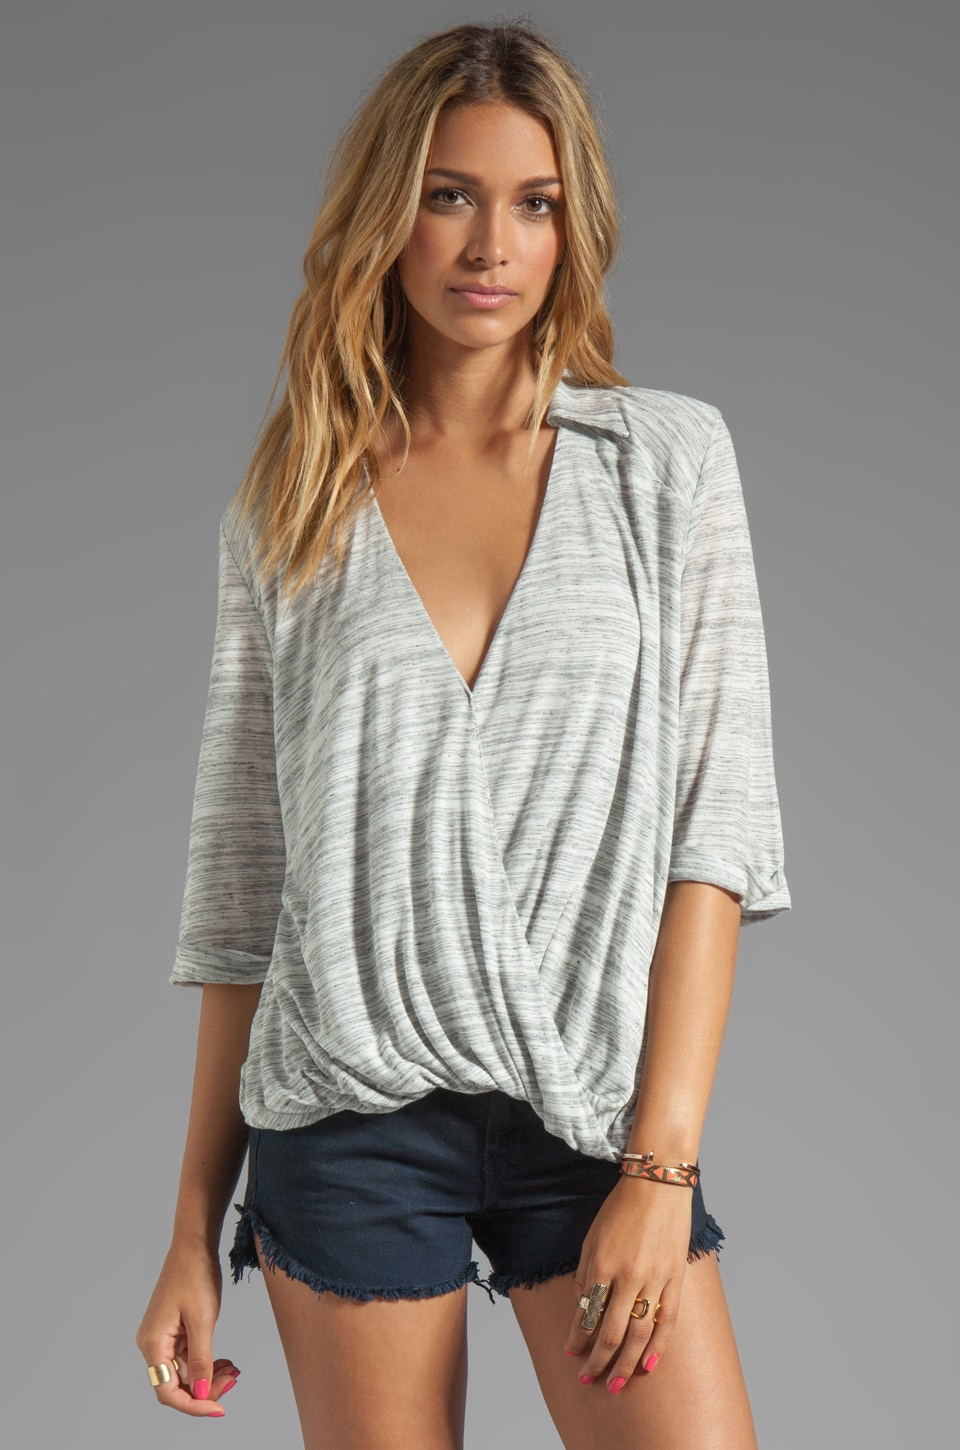 Blue Life Draped Blouse in Stone